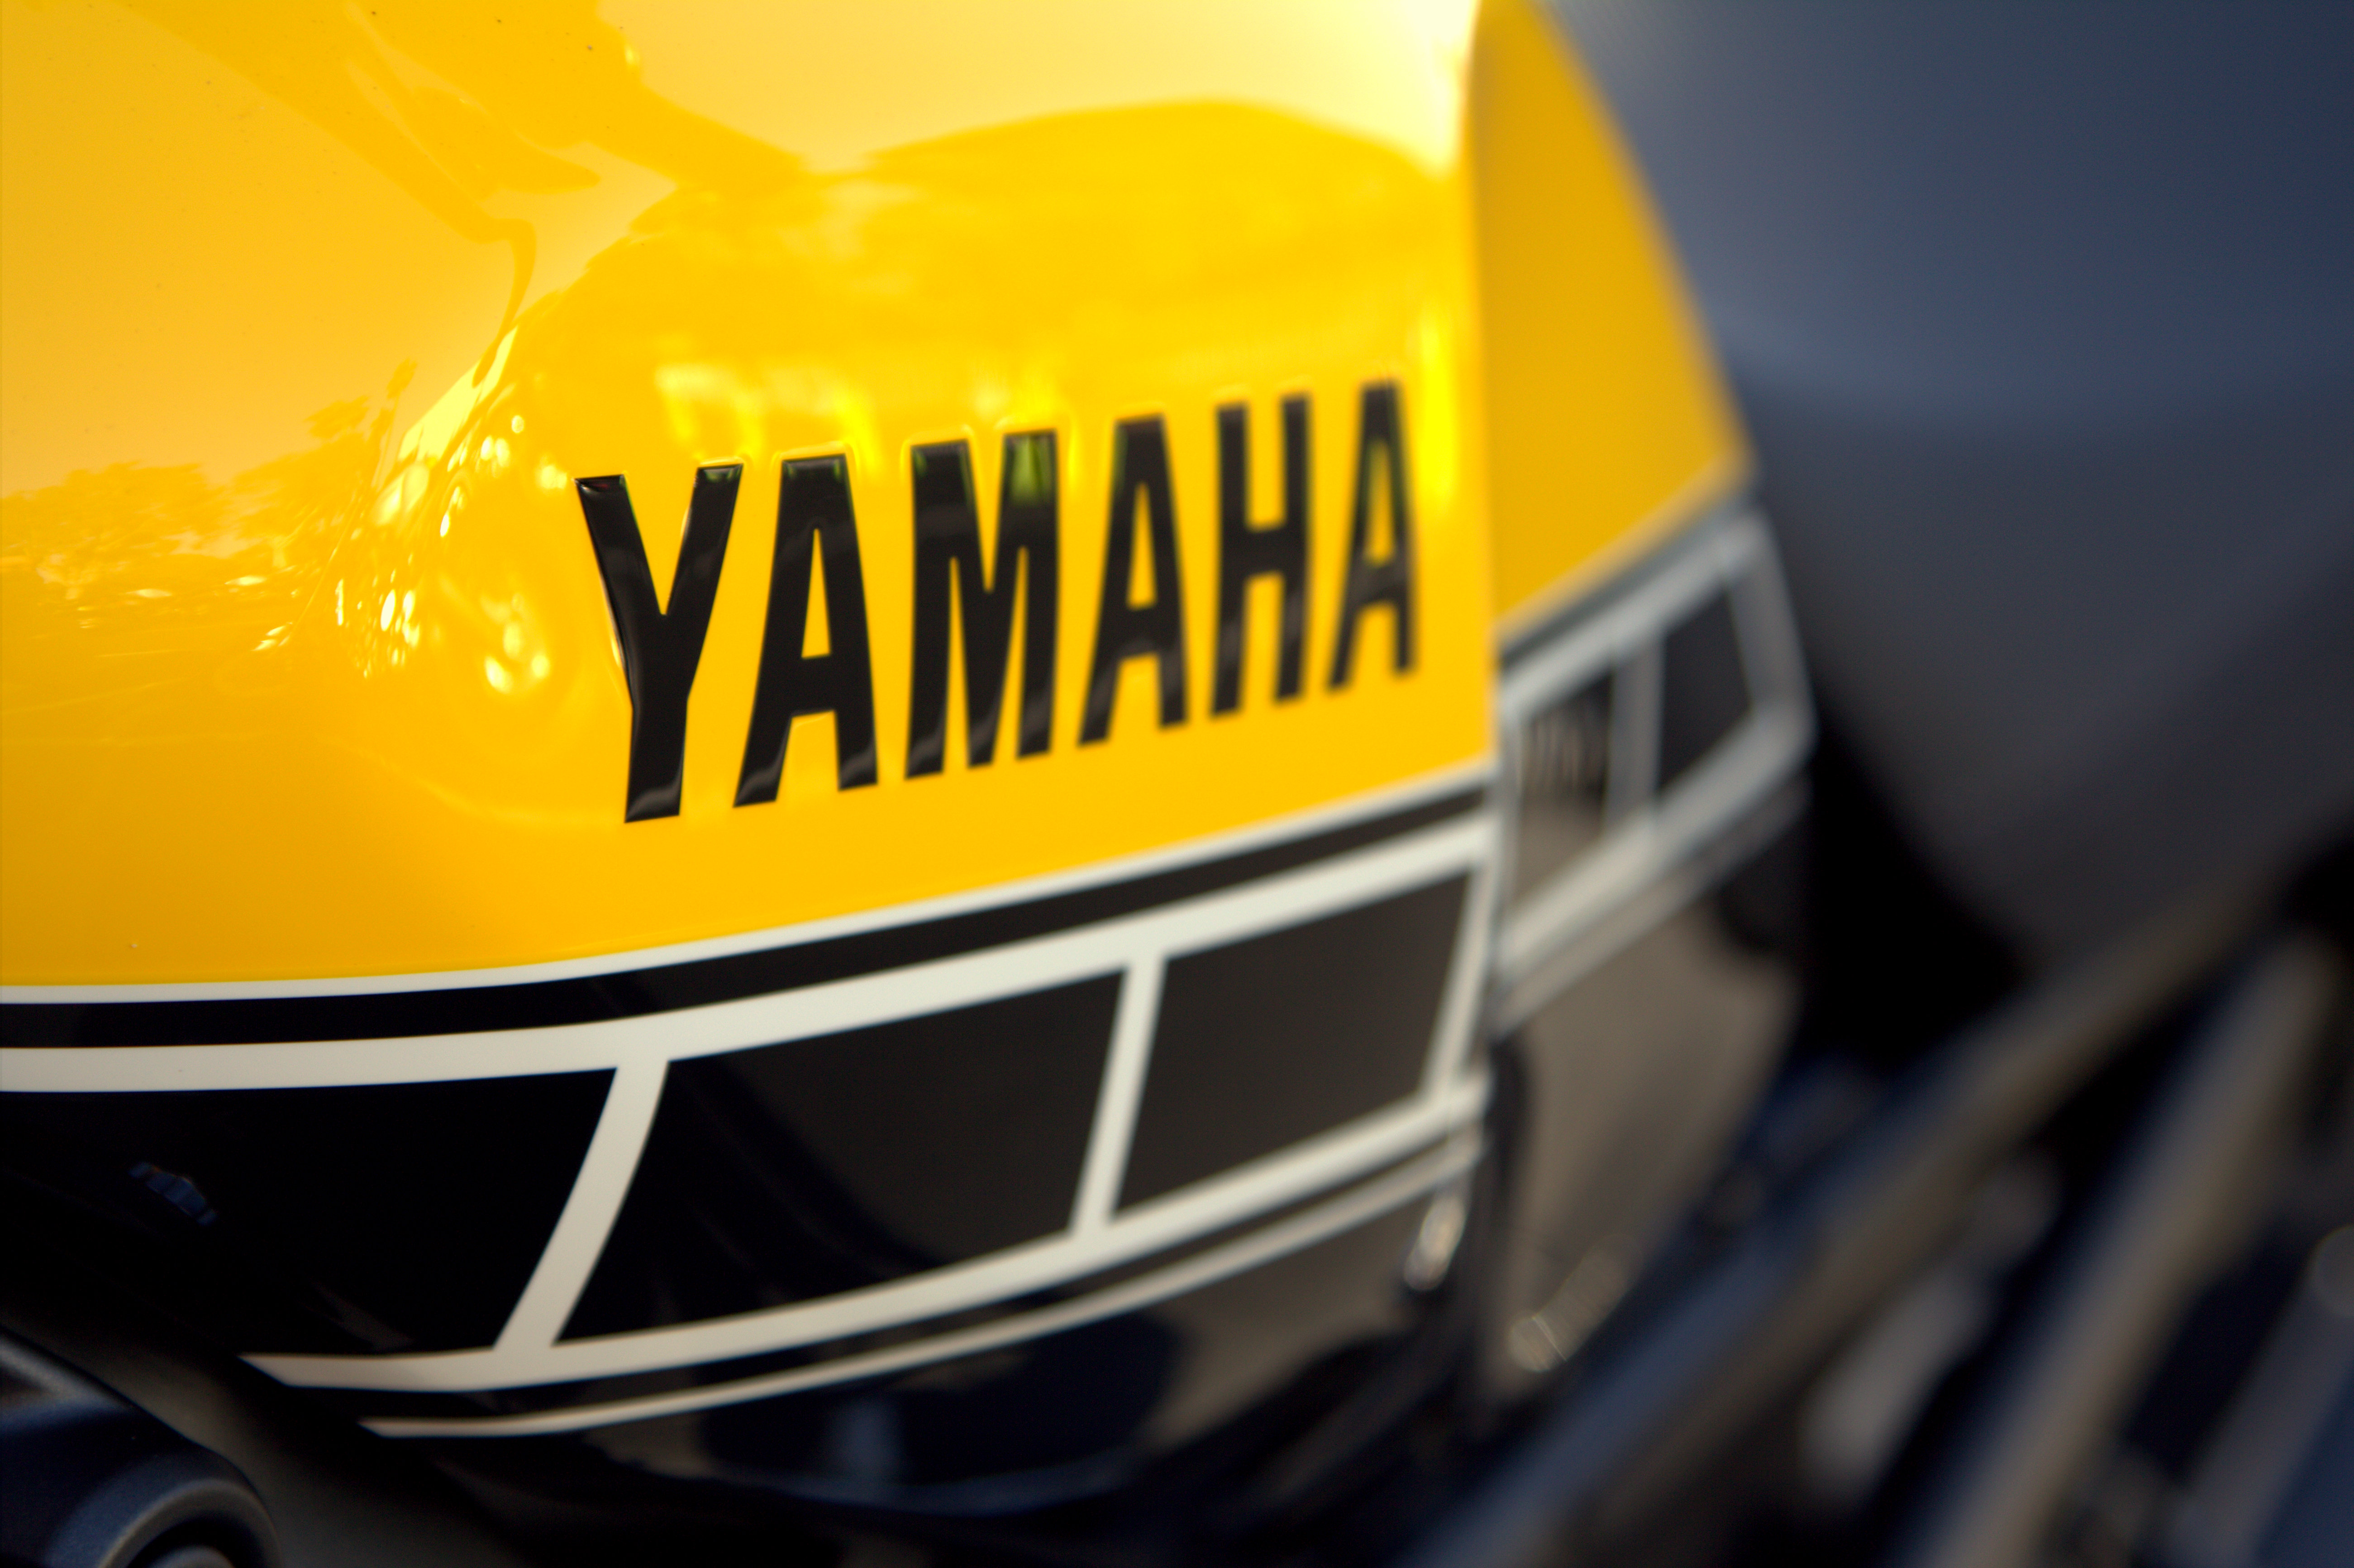 2016 Yamaha XSR900 first ride review - RevZilla